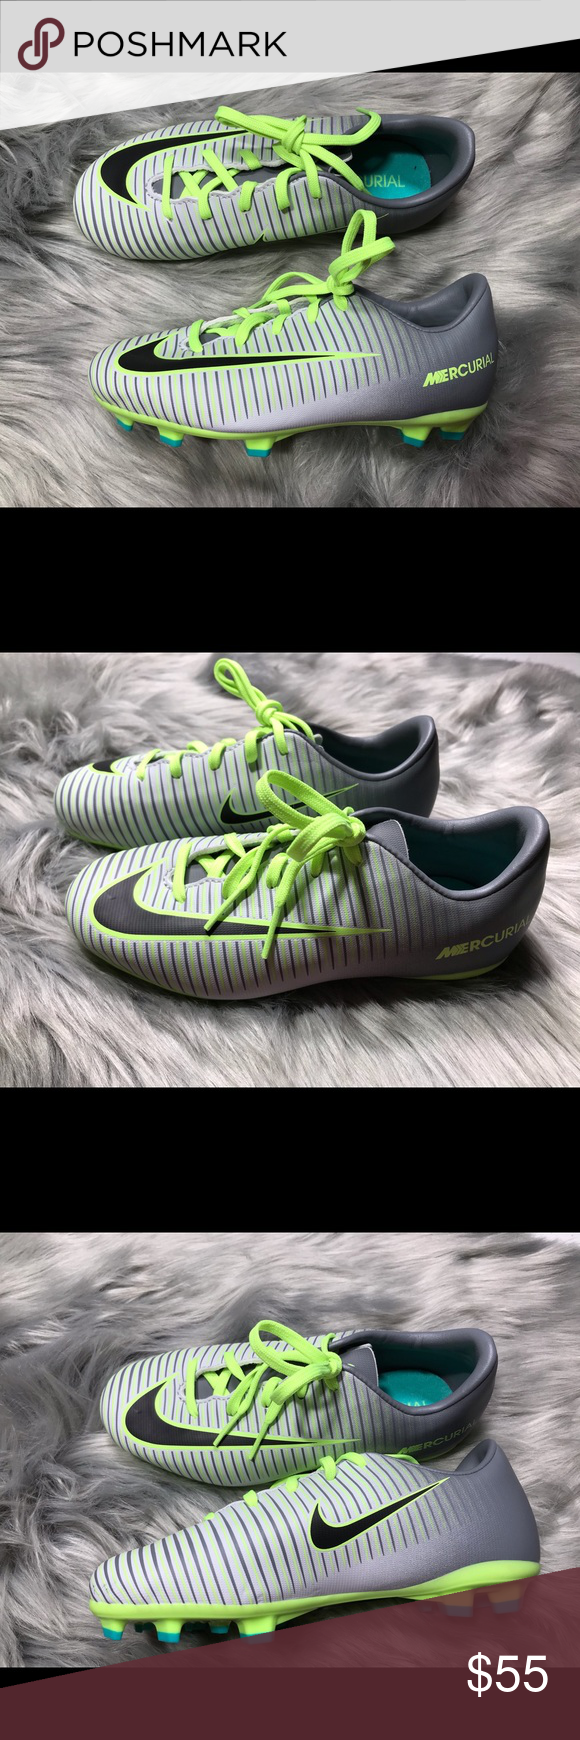 Nike JR Mercurial Soccer Cleats 12c and